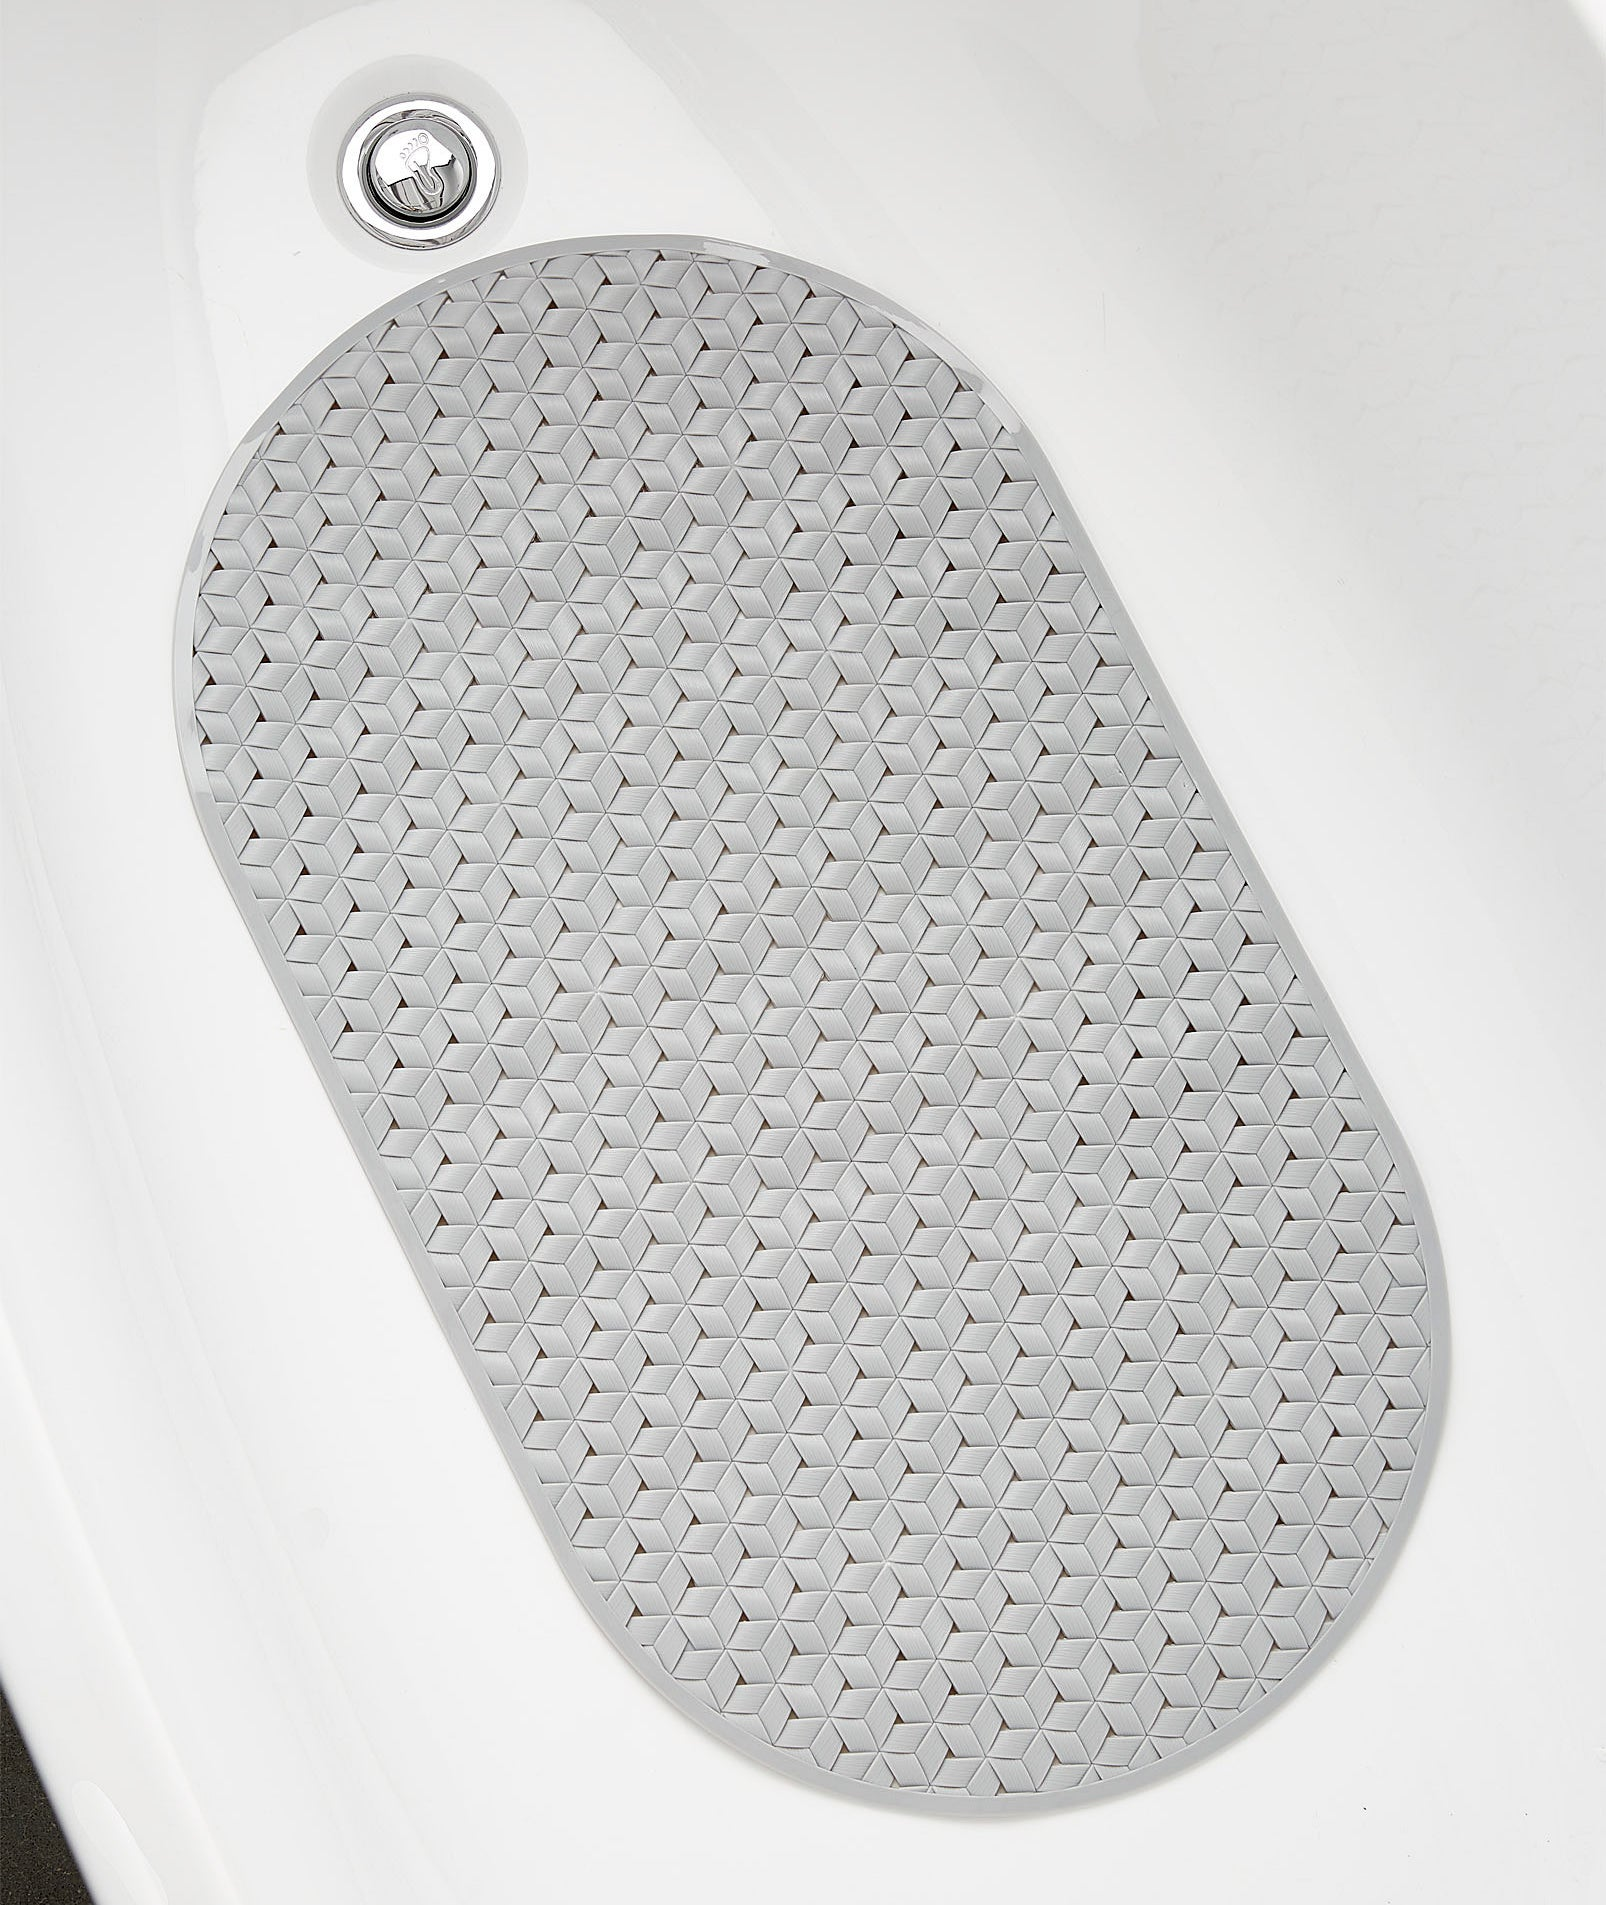 A top down view of the woven silicone bath mat inside a tub